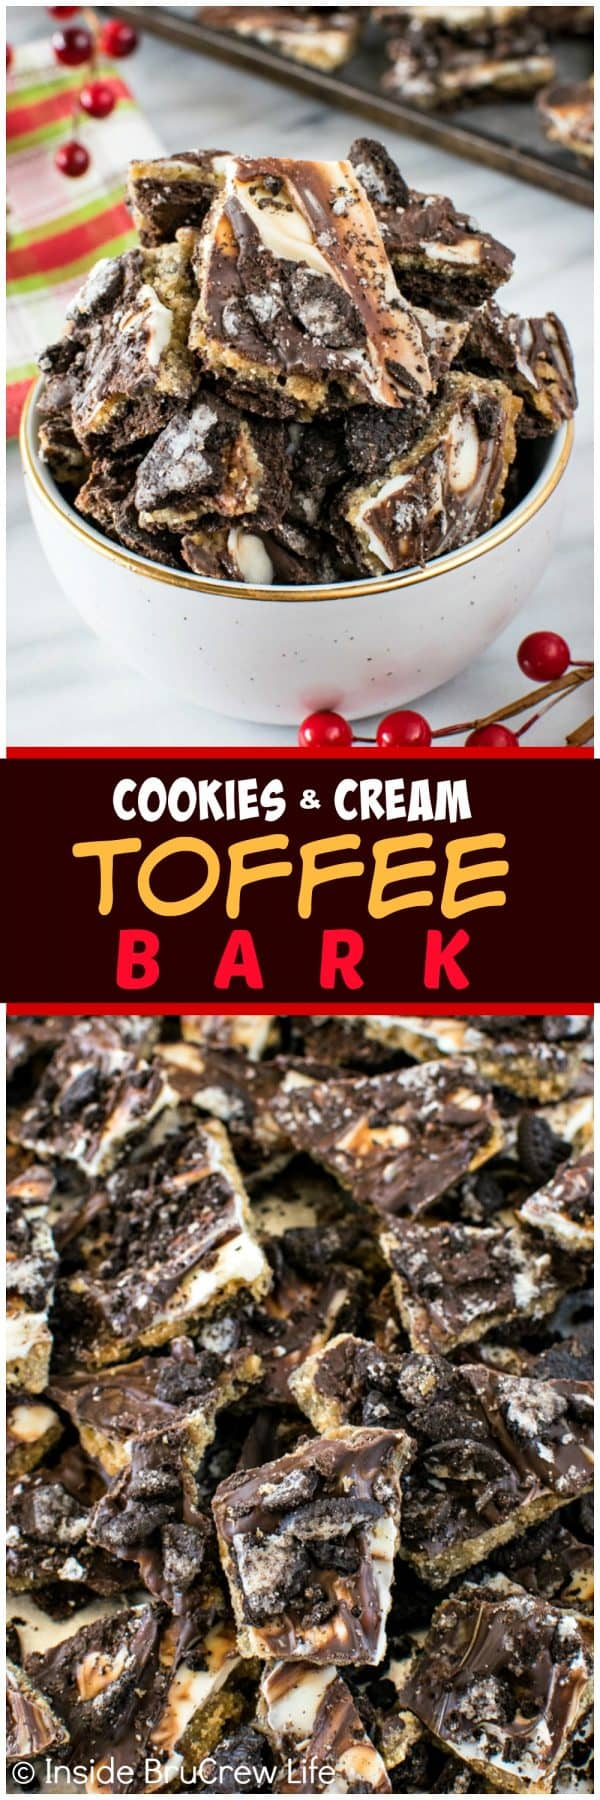 Cookies and Cream Toffee Bark - this easy 5 ingredient treat is loaded with chocolate and cookie chunks! Great dessert recipe for holiday parties!